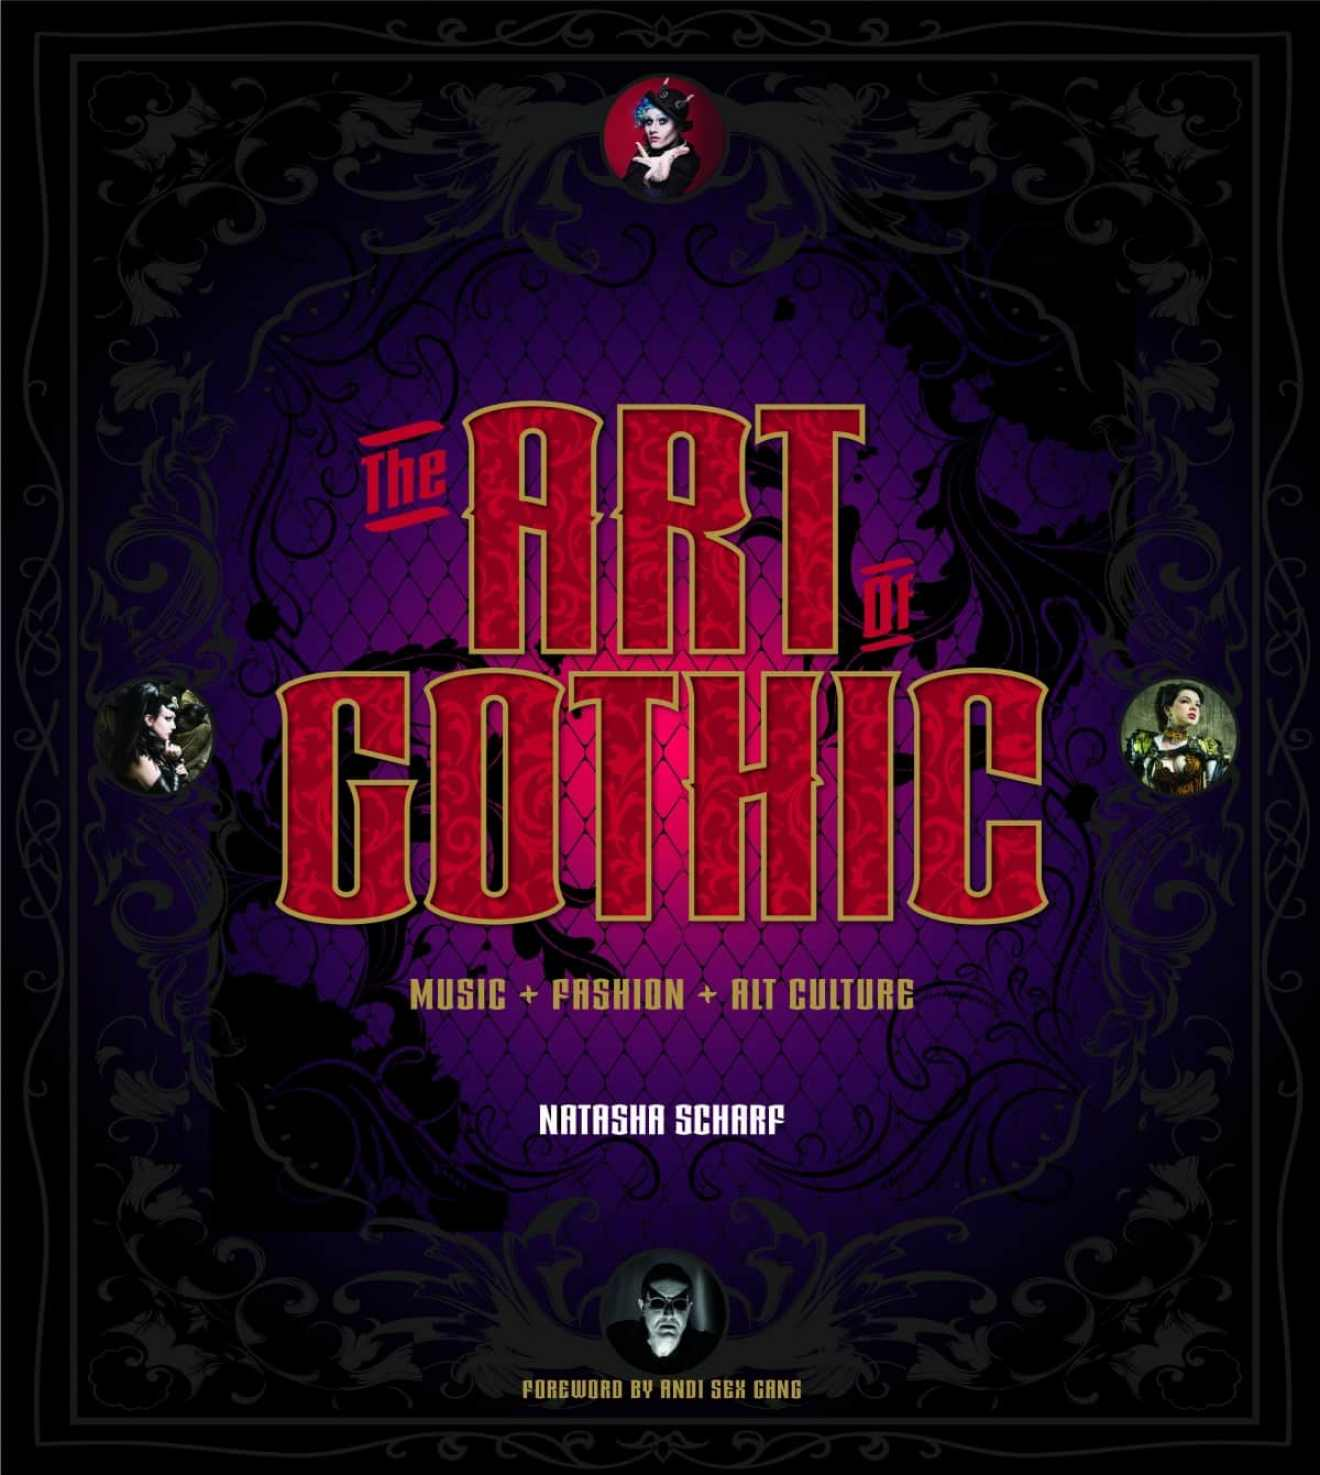 'The Art of Gothic' was originally published on November 11th, 2014 by Backbeat Books